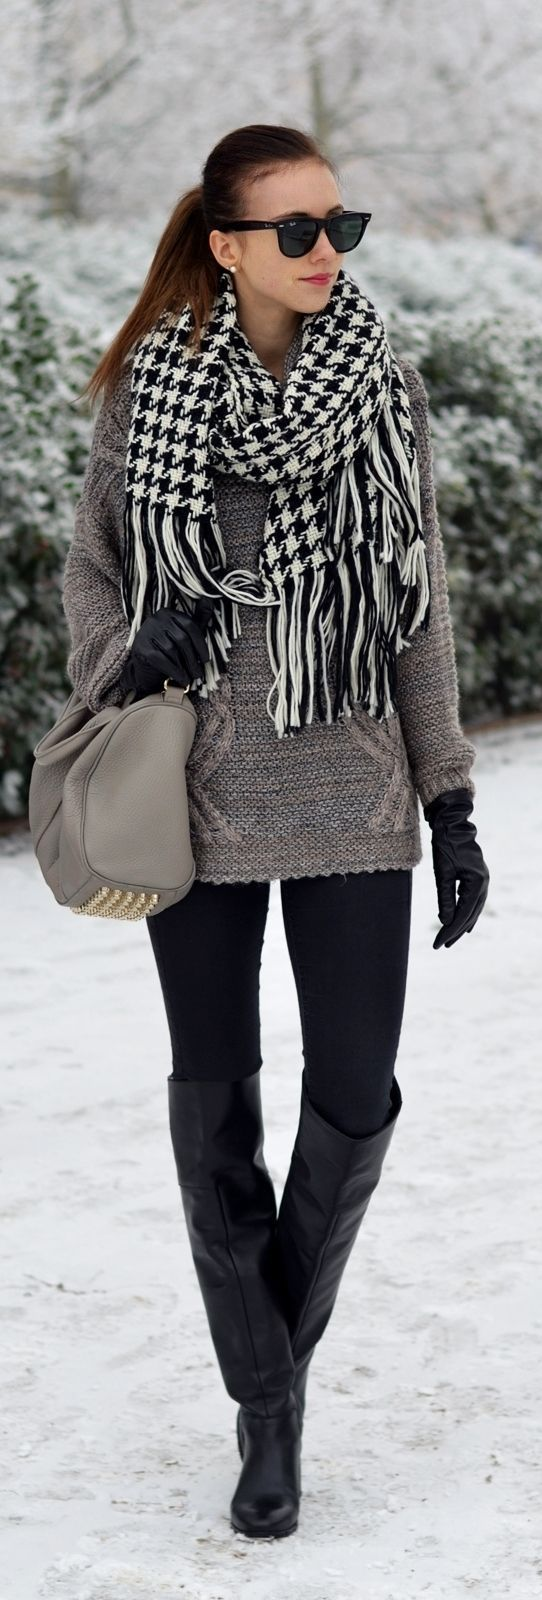 Best 25  Fall winter outfits ideas on Pinterest | Winter outfits ...